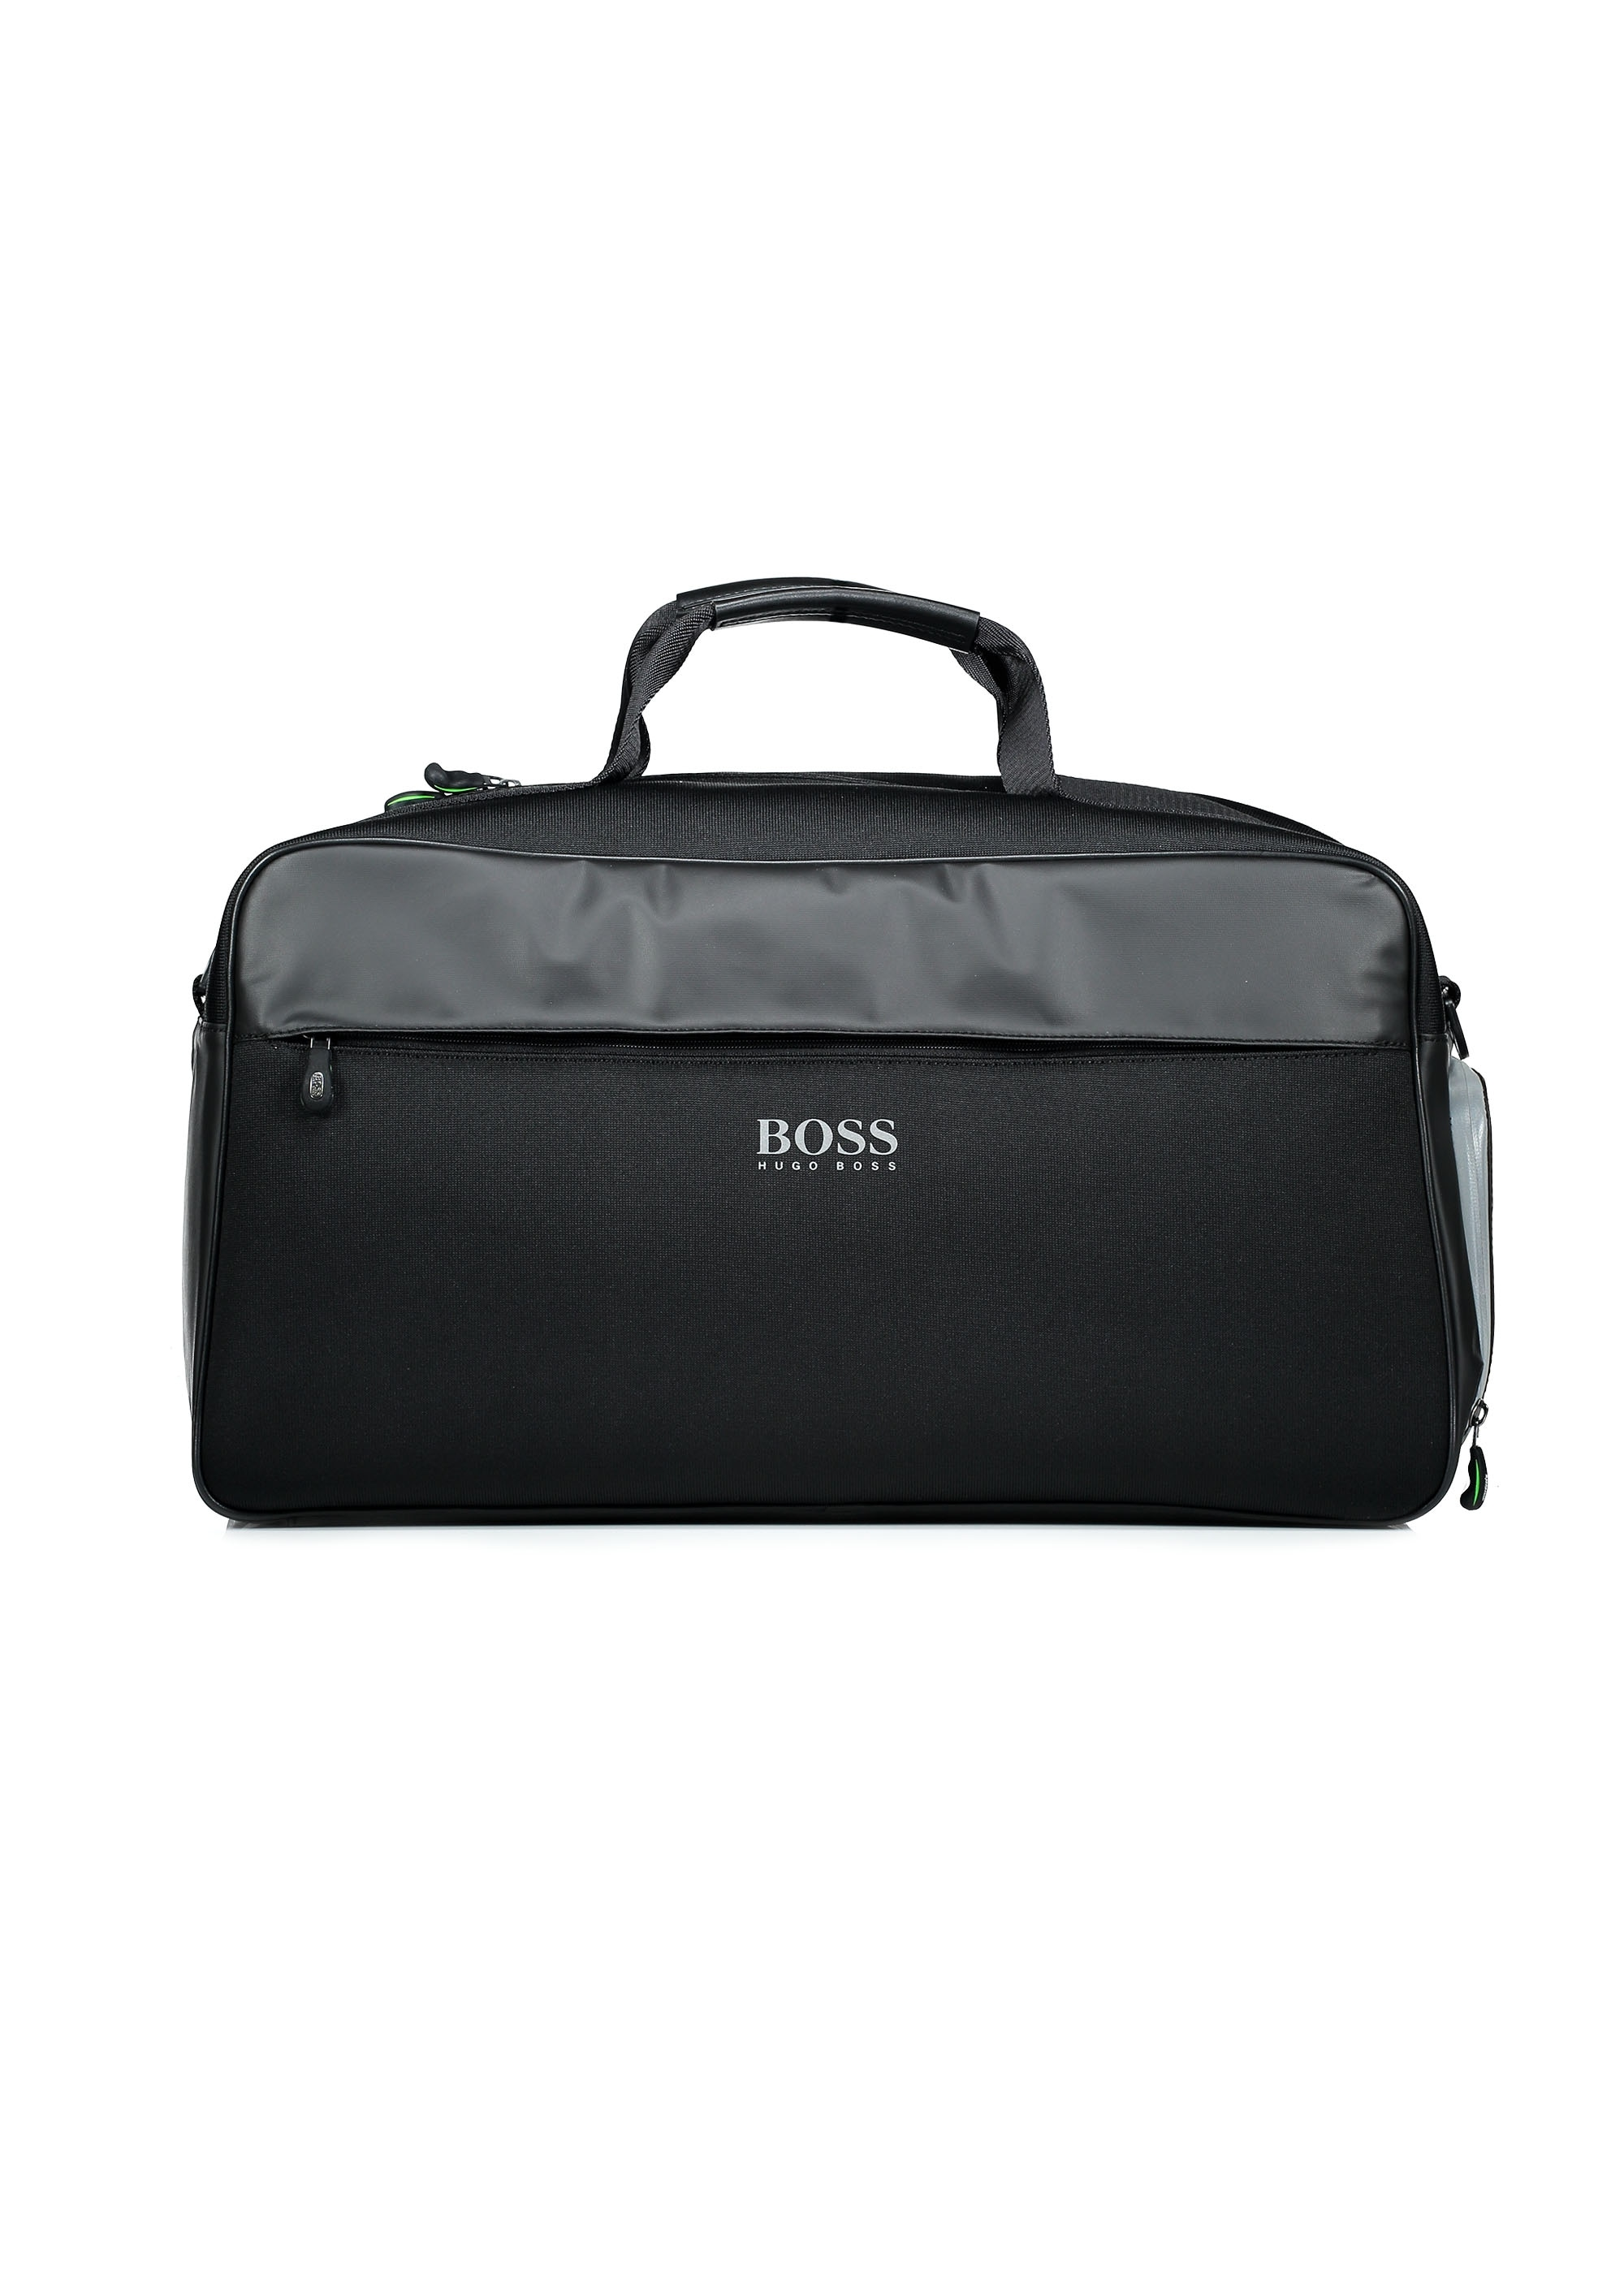 b3d6ae6eb BOSS Lightec Holdall - Black - Bags from Triads UK